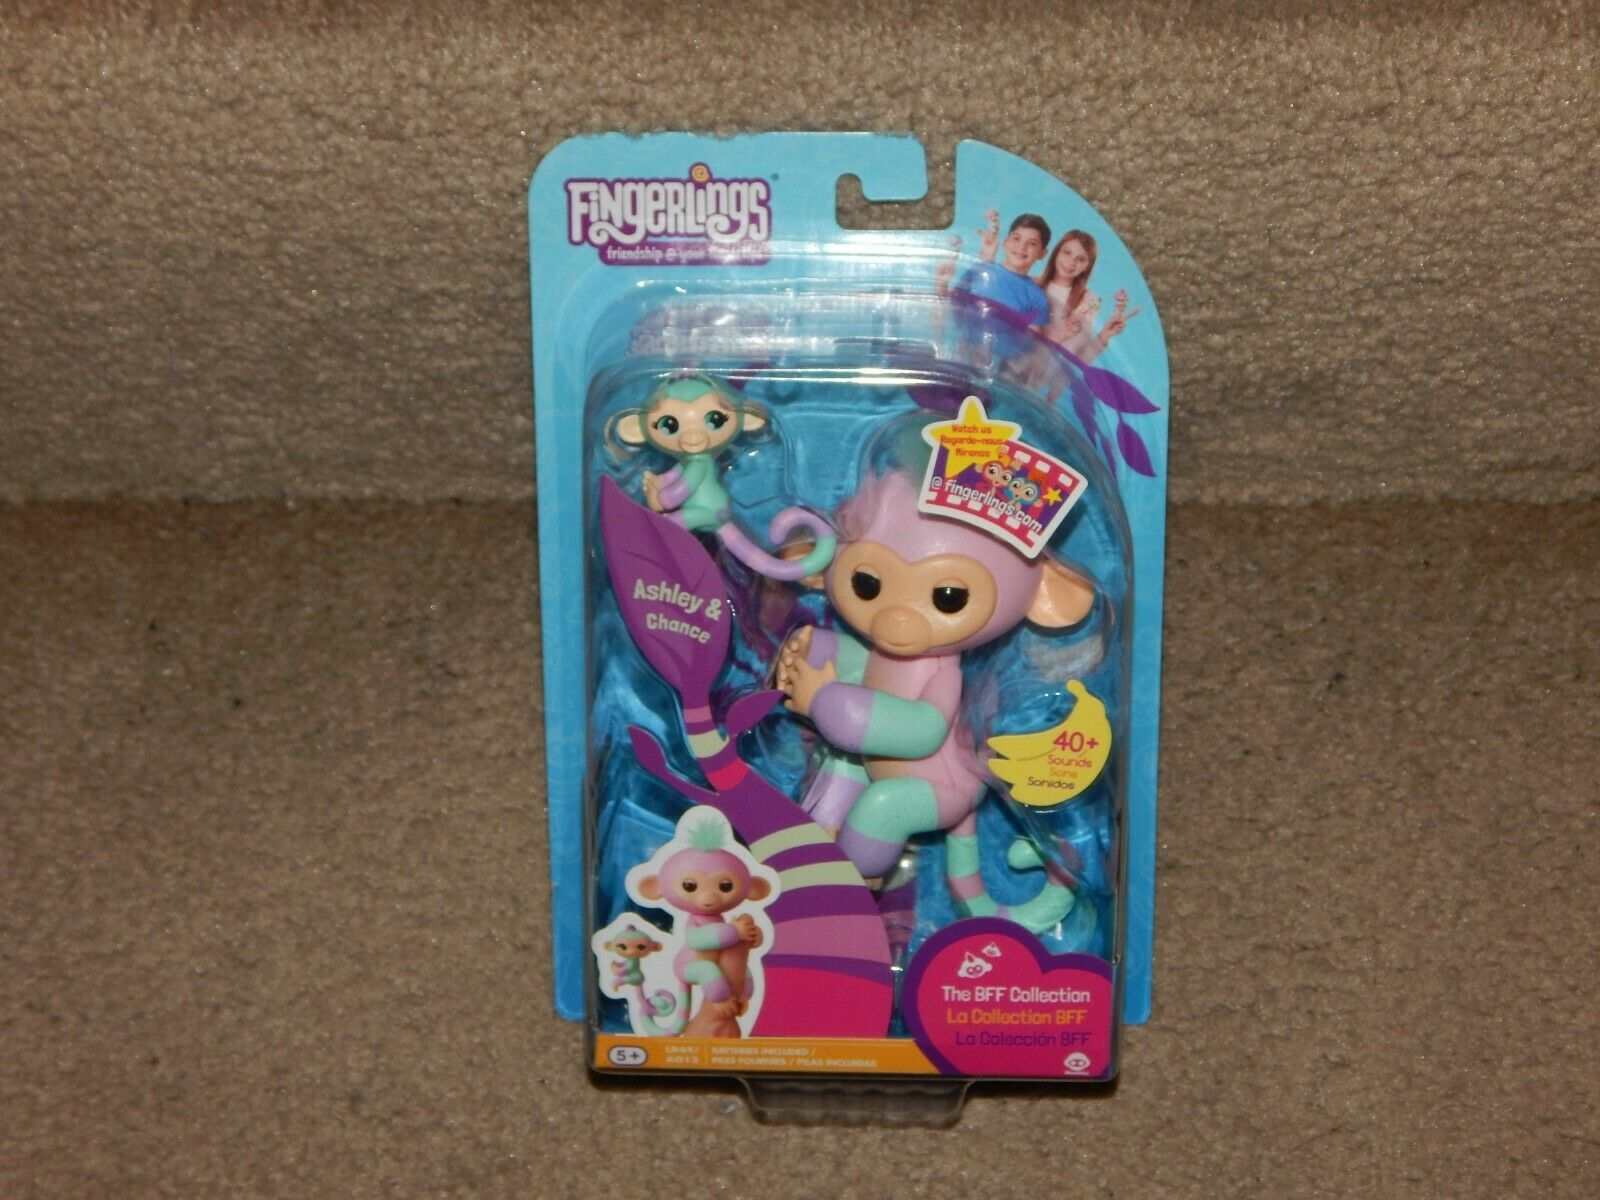 New Fingerlings BFF Collection Ashley & Chance + LR44 Batteries Free Shipping 5+